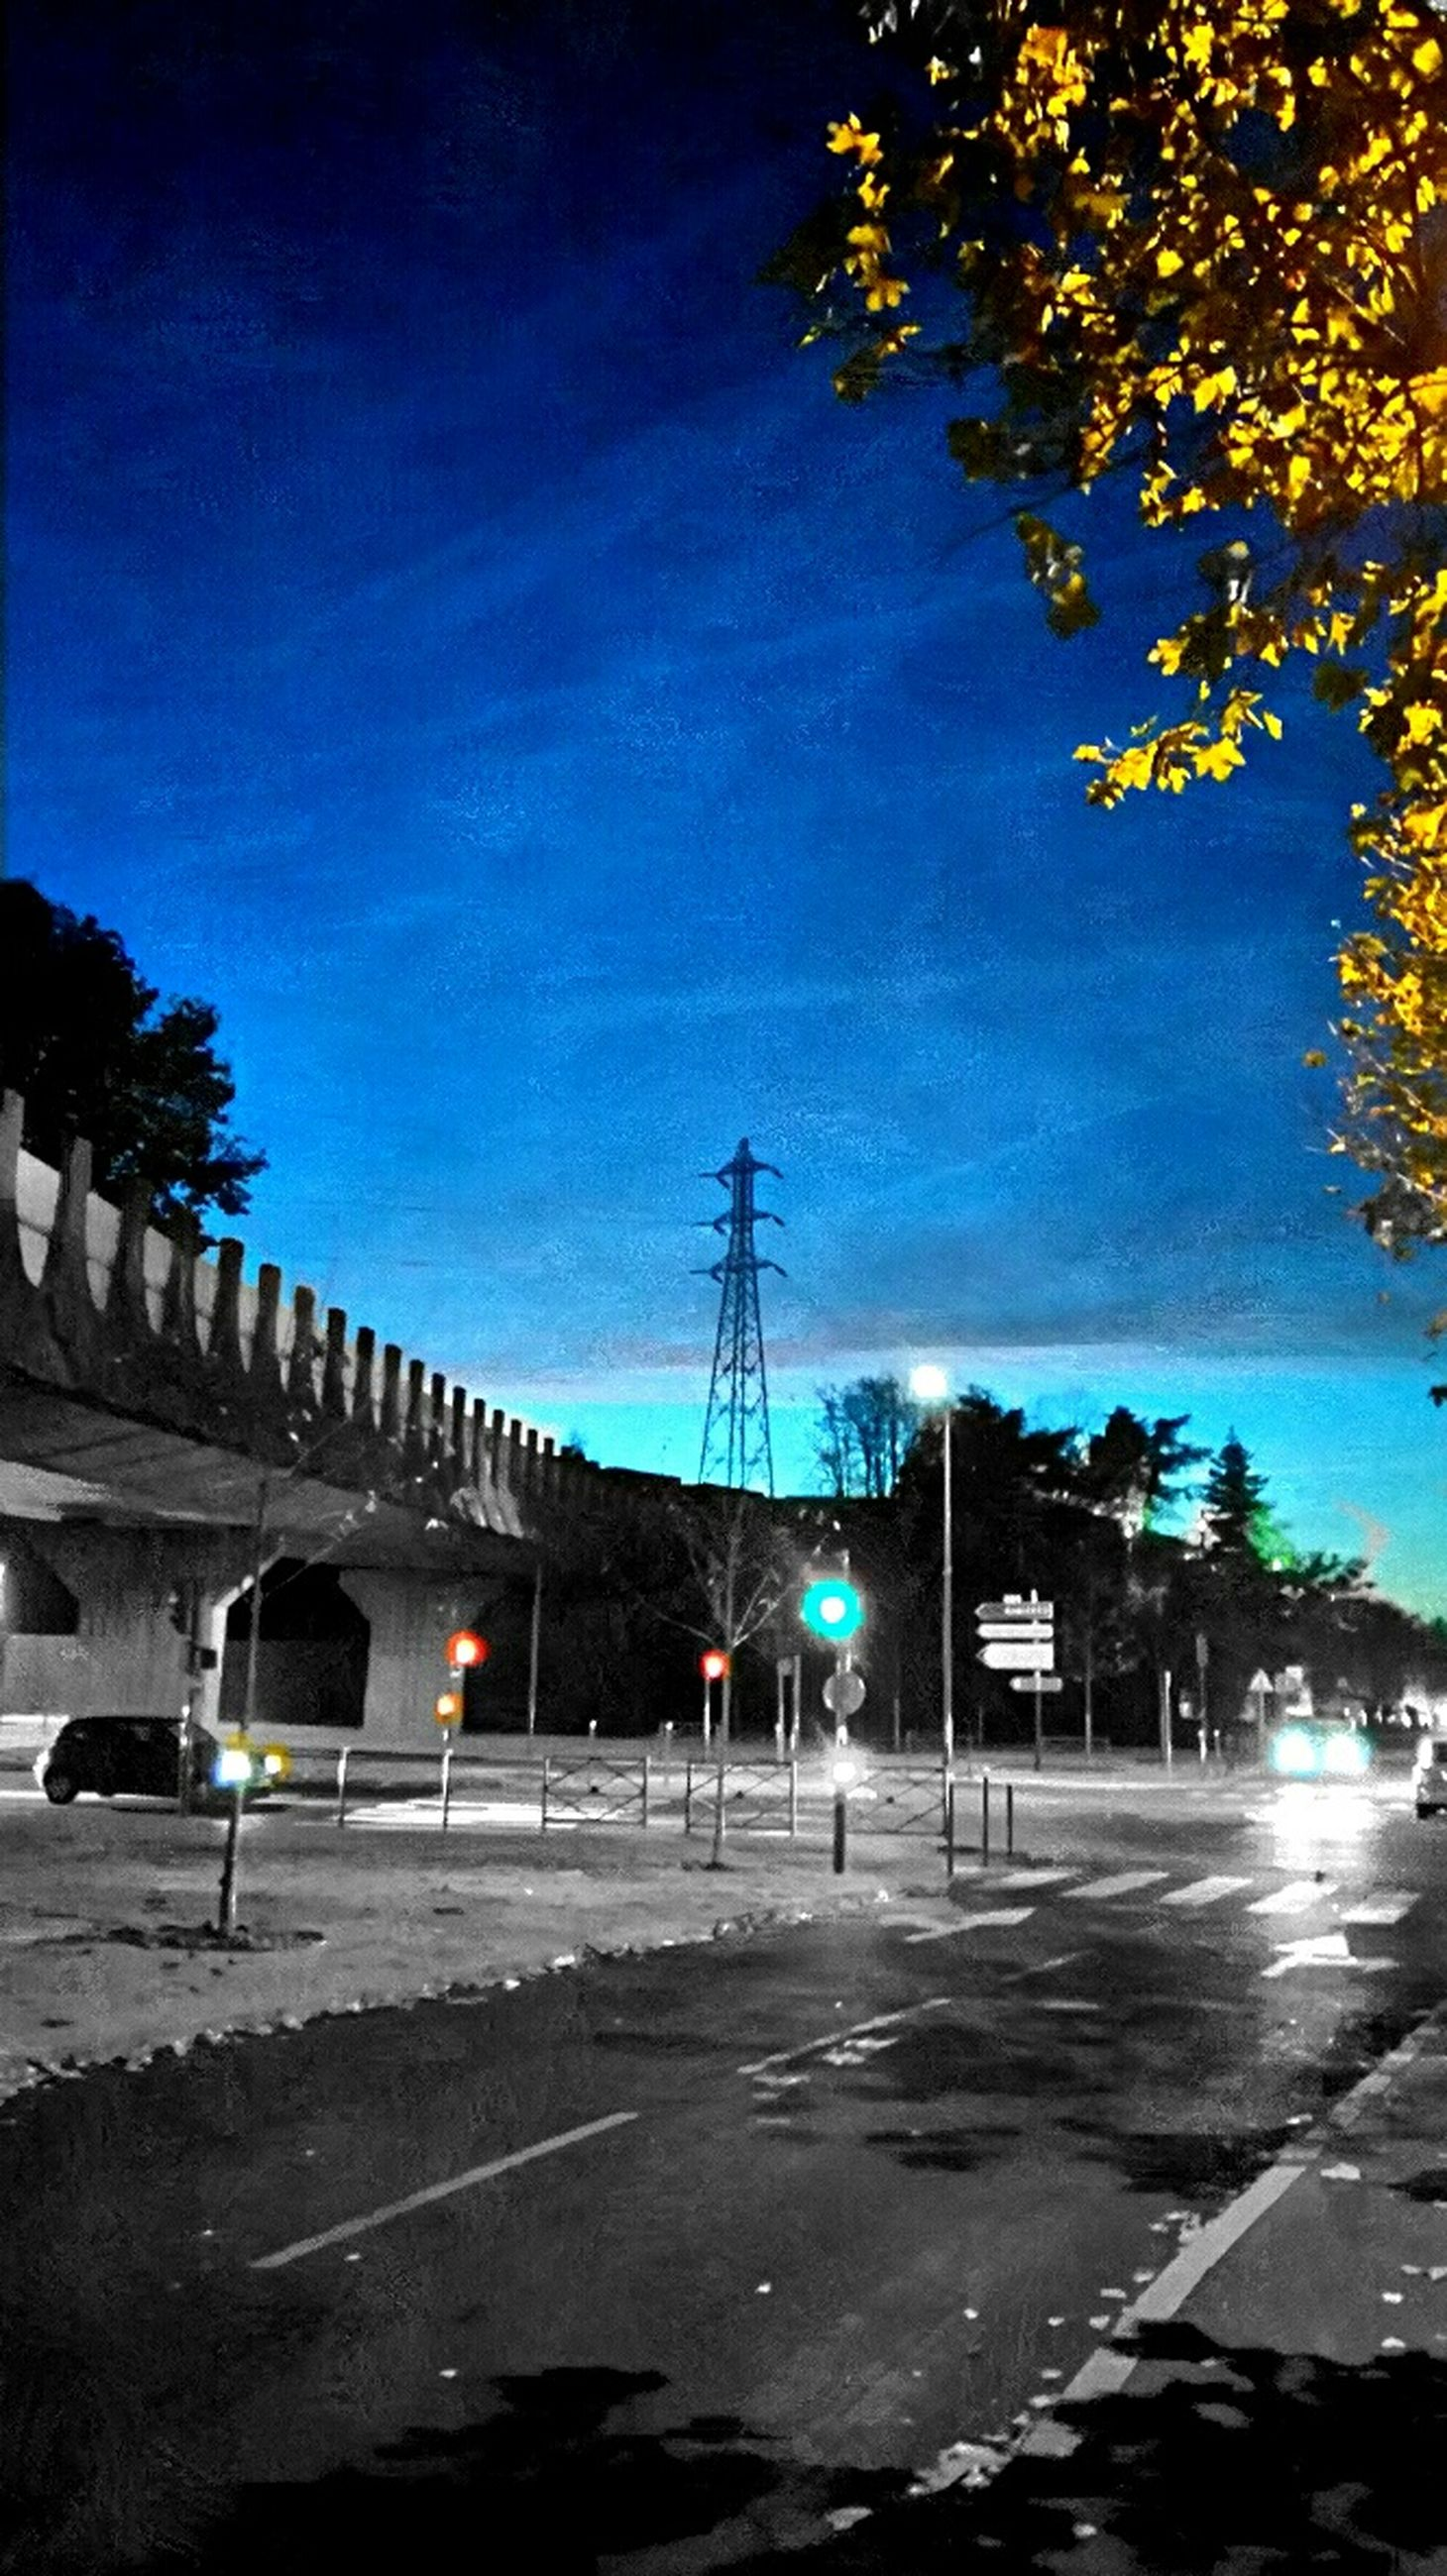 built structure, tree, street light, building exterior, road, architecture, street, transportation, sky, car, city, lighting equipment, the way forward, illuminated, blue, sunlight, outdoors, road marking, low angle view, no people